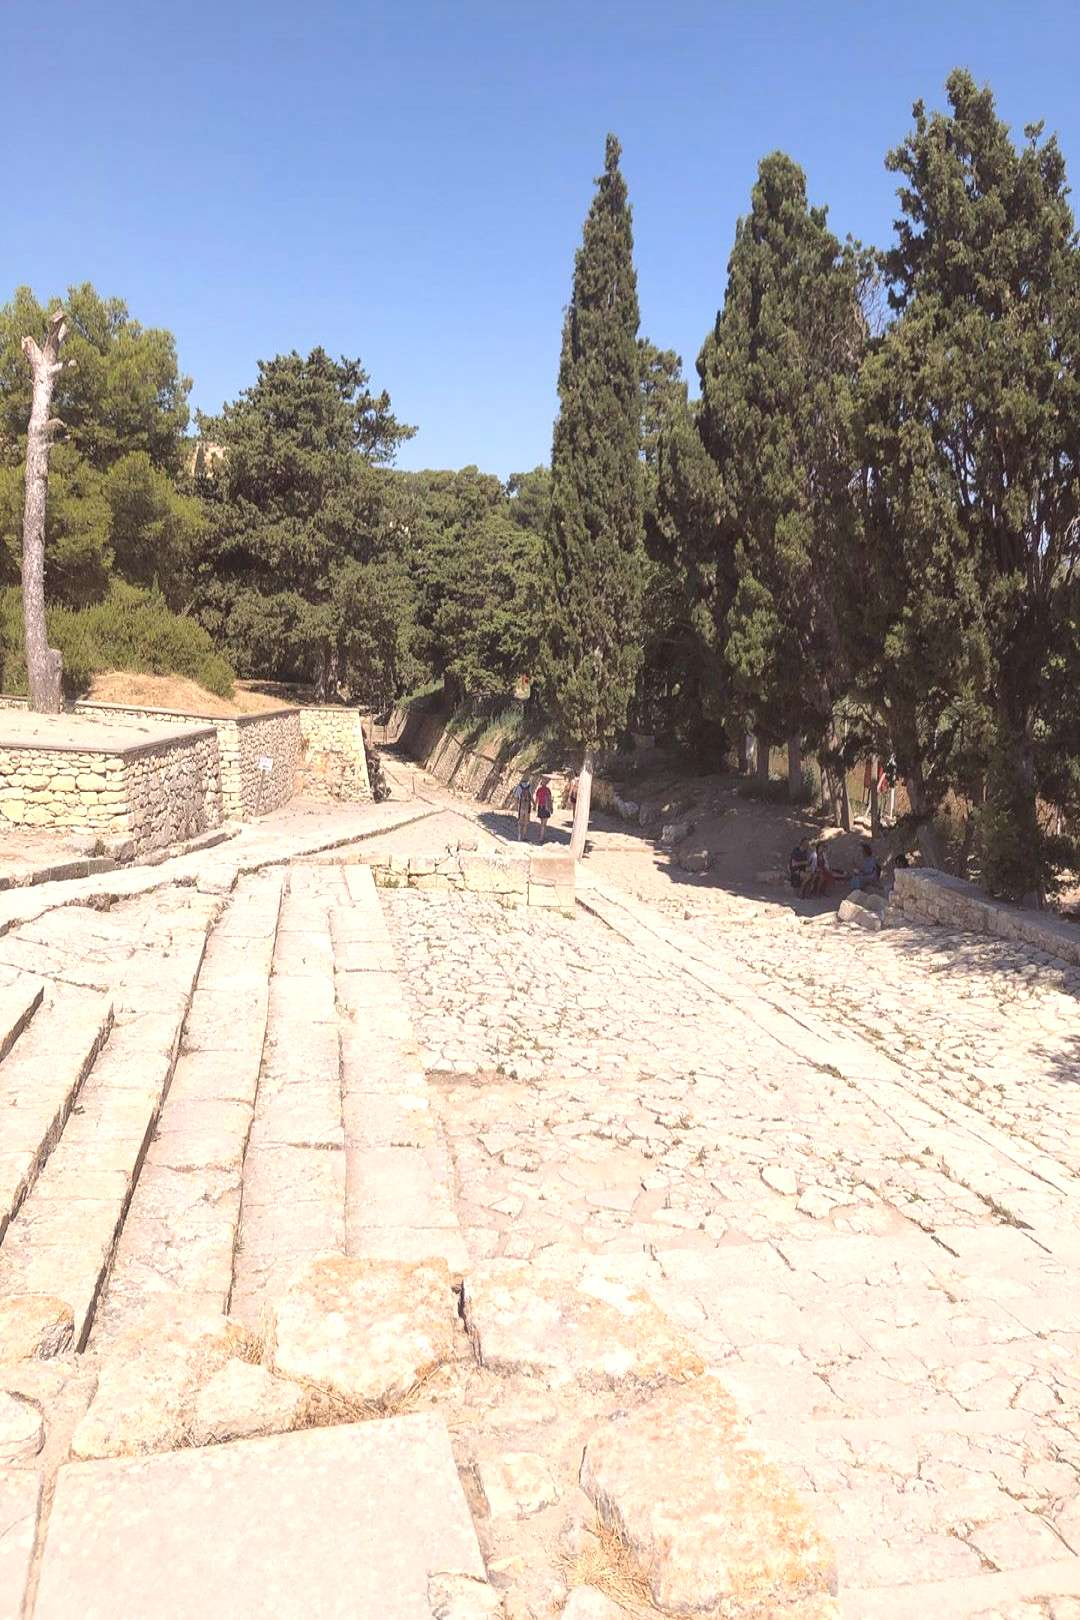 Geek roads at the knossos palace, honest was an amazing experienc